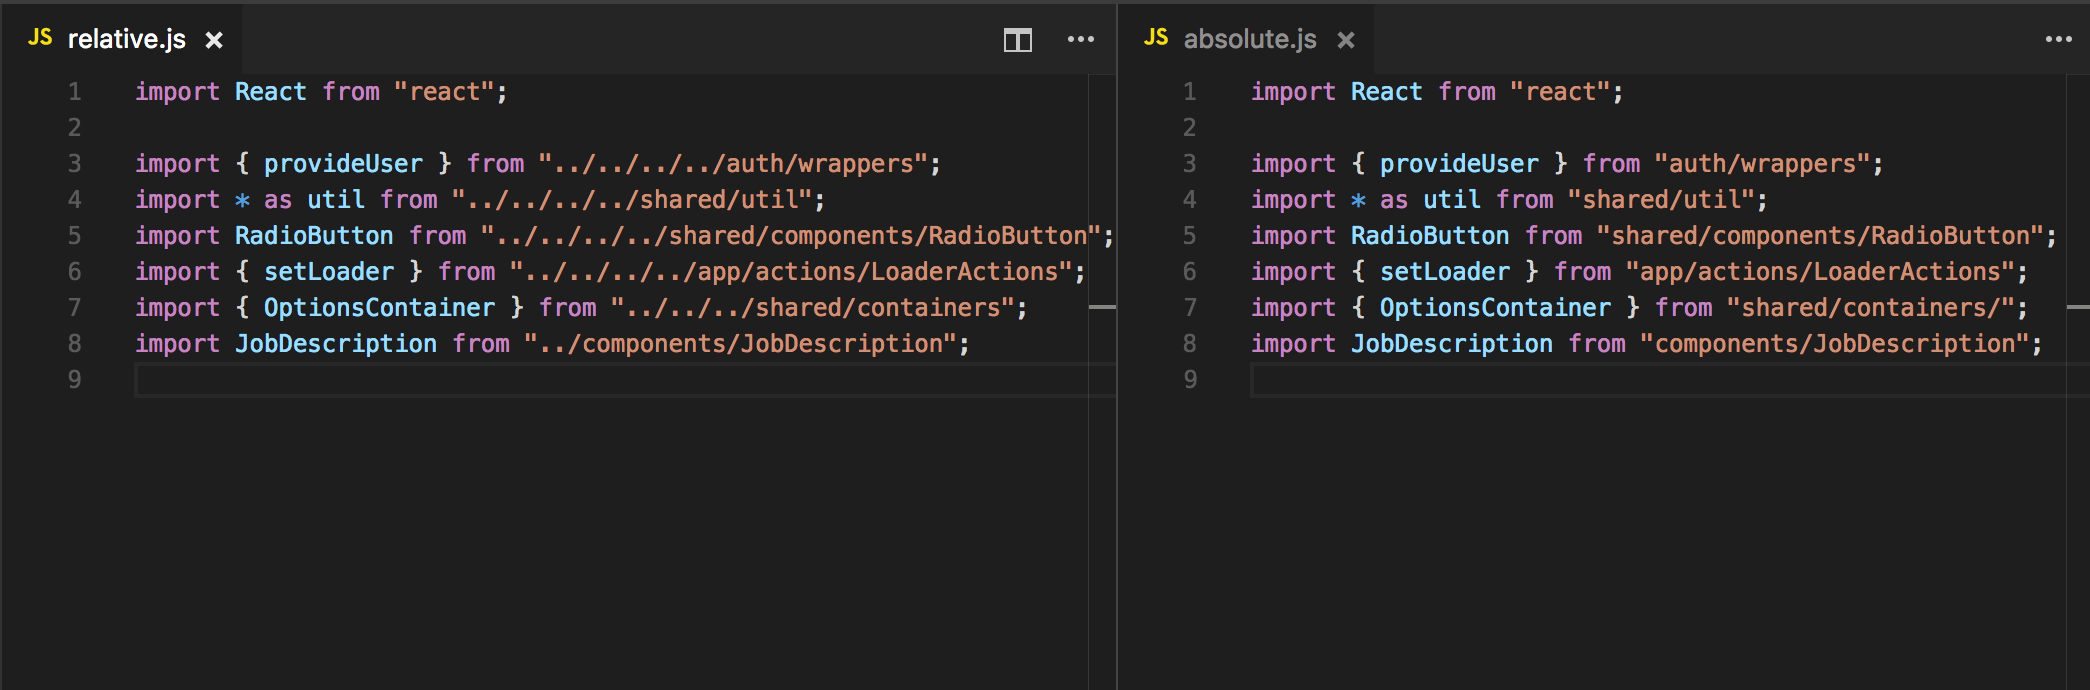 React Pro Tip: Use absolute imports for better readability and easy